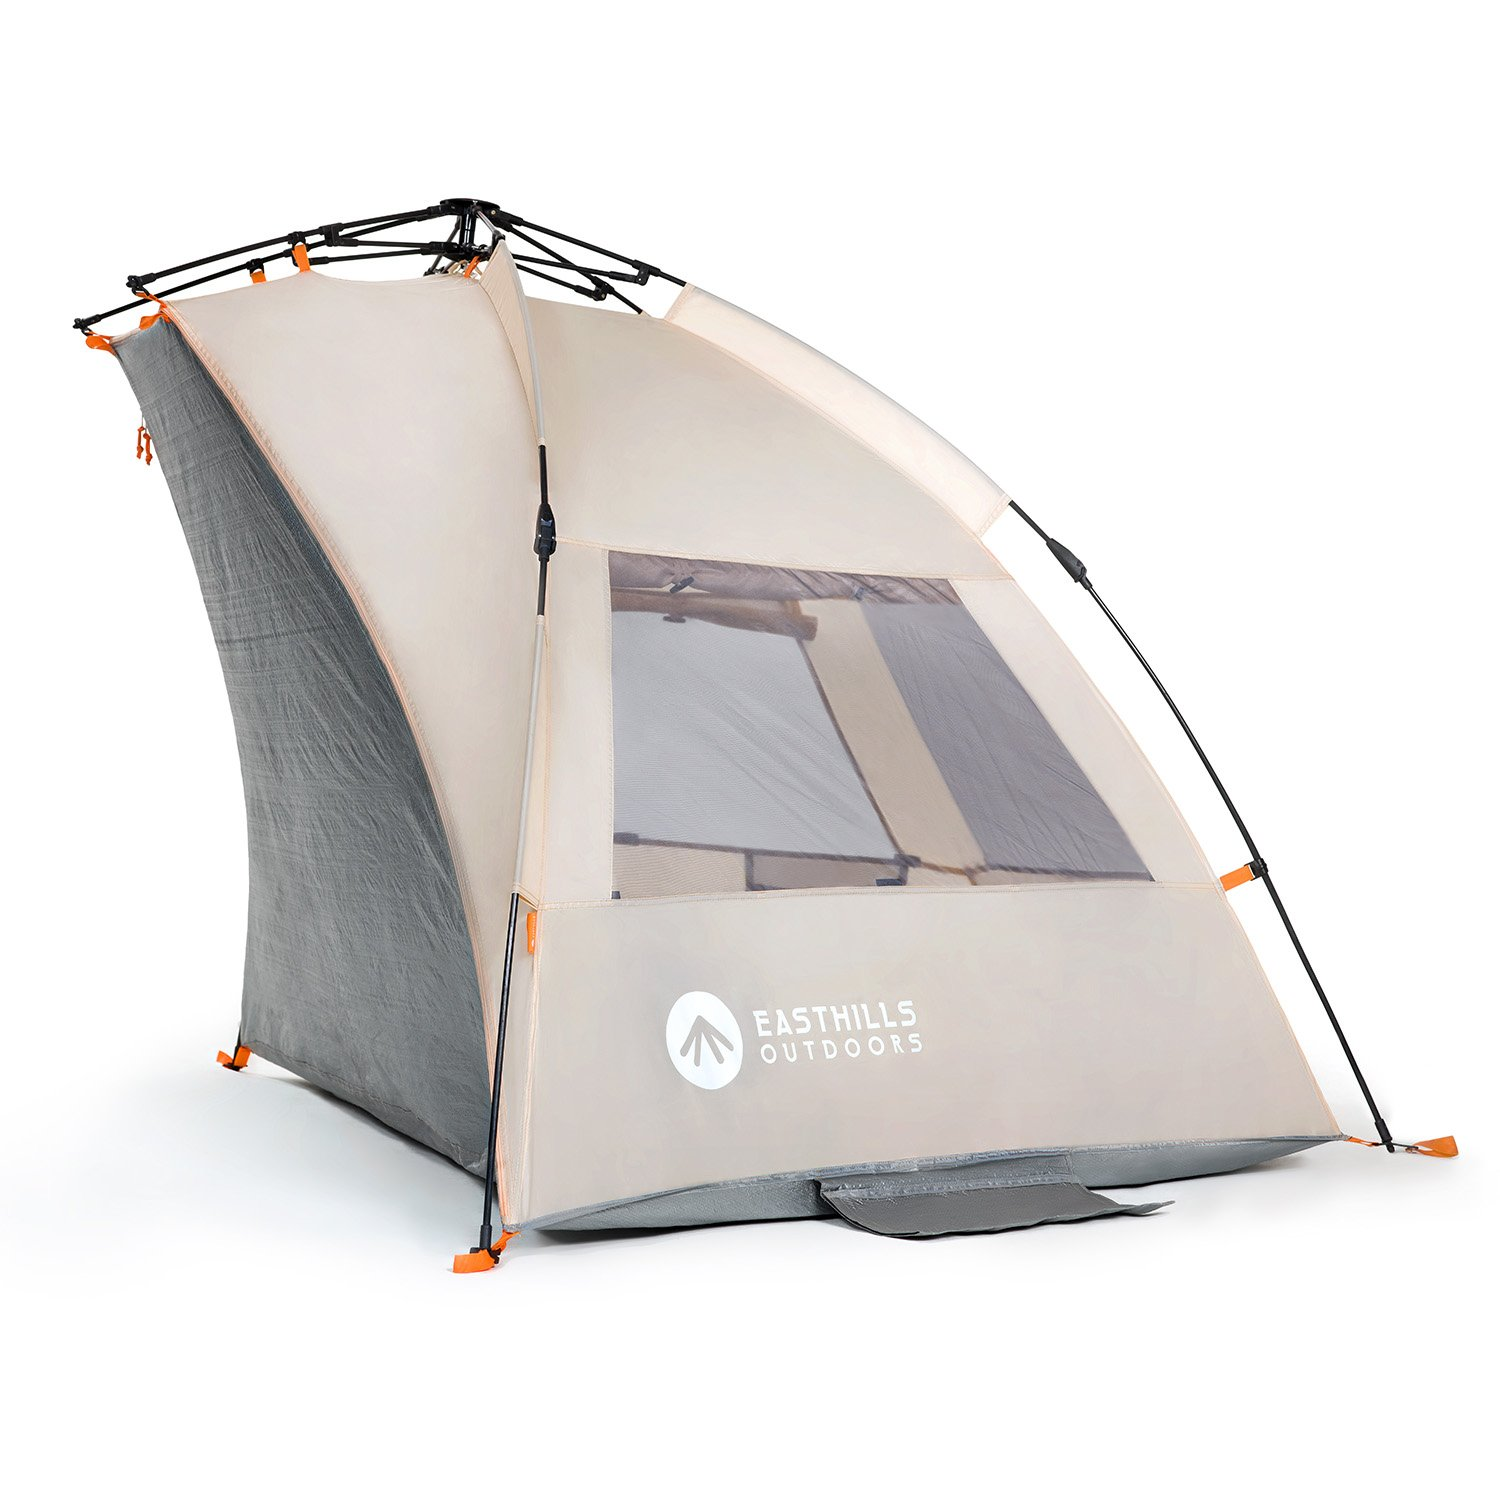 Amazon.com Easthills Outdoors Easy Up Beach Tent Sun Shelter - Extended Zippered Porch Included Sports u0026 Outdoors  sc 1 st  Amazon.com & Amazon.com: Easthills Outdoors Easy Up Beach Tent Sun Shelter ...